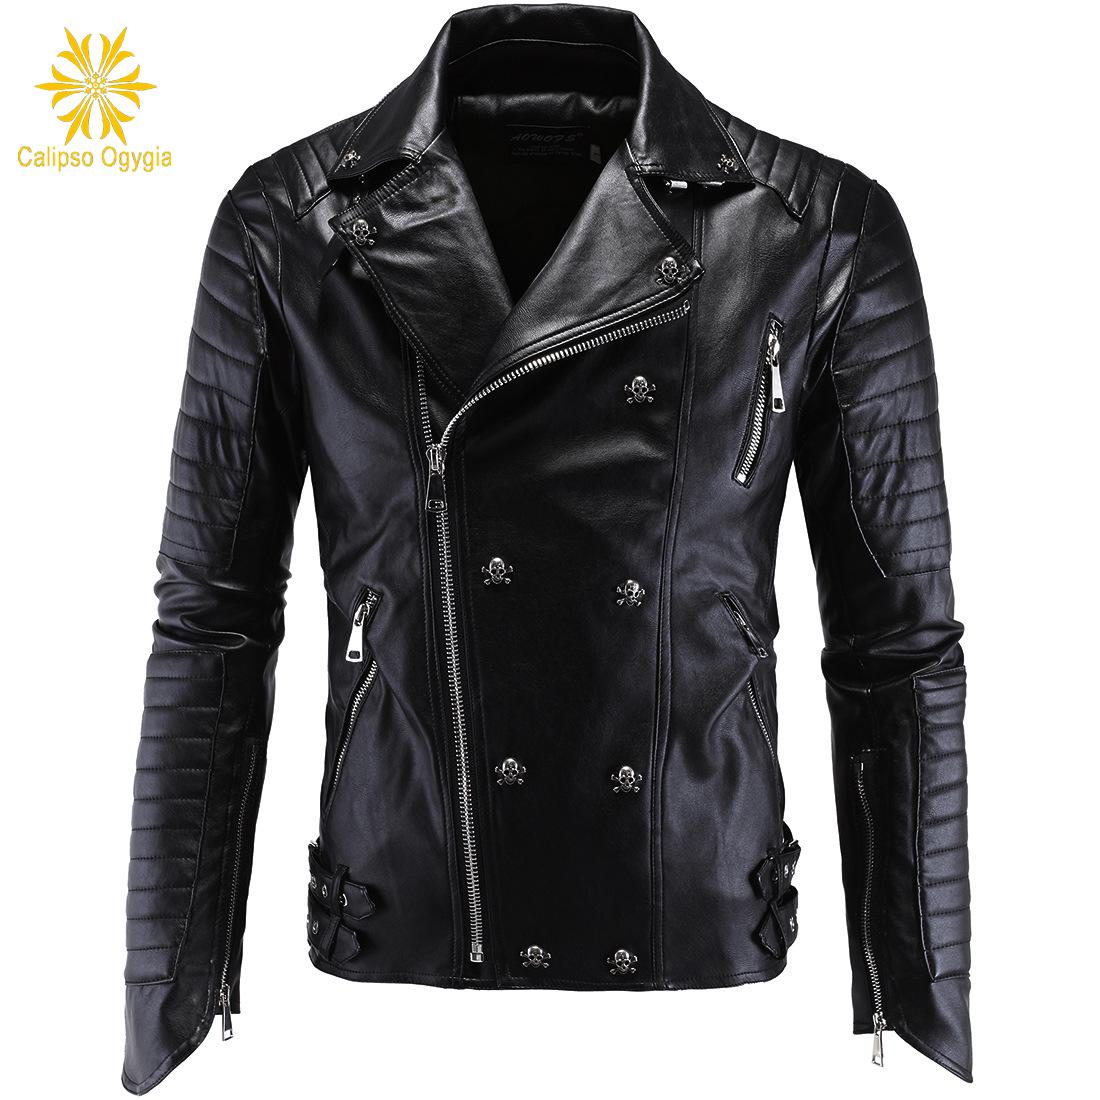 Winter Fashion Mens Leather Jackets And Coats Full Pelt Skullls Botton Punk Style Zippers Pu Leather Jacket Men Motorcycle Coat